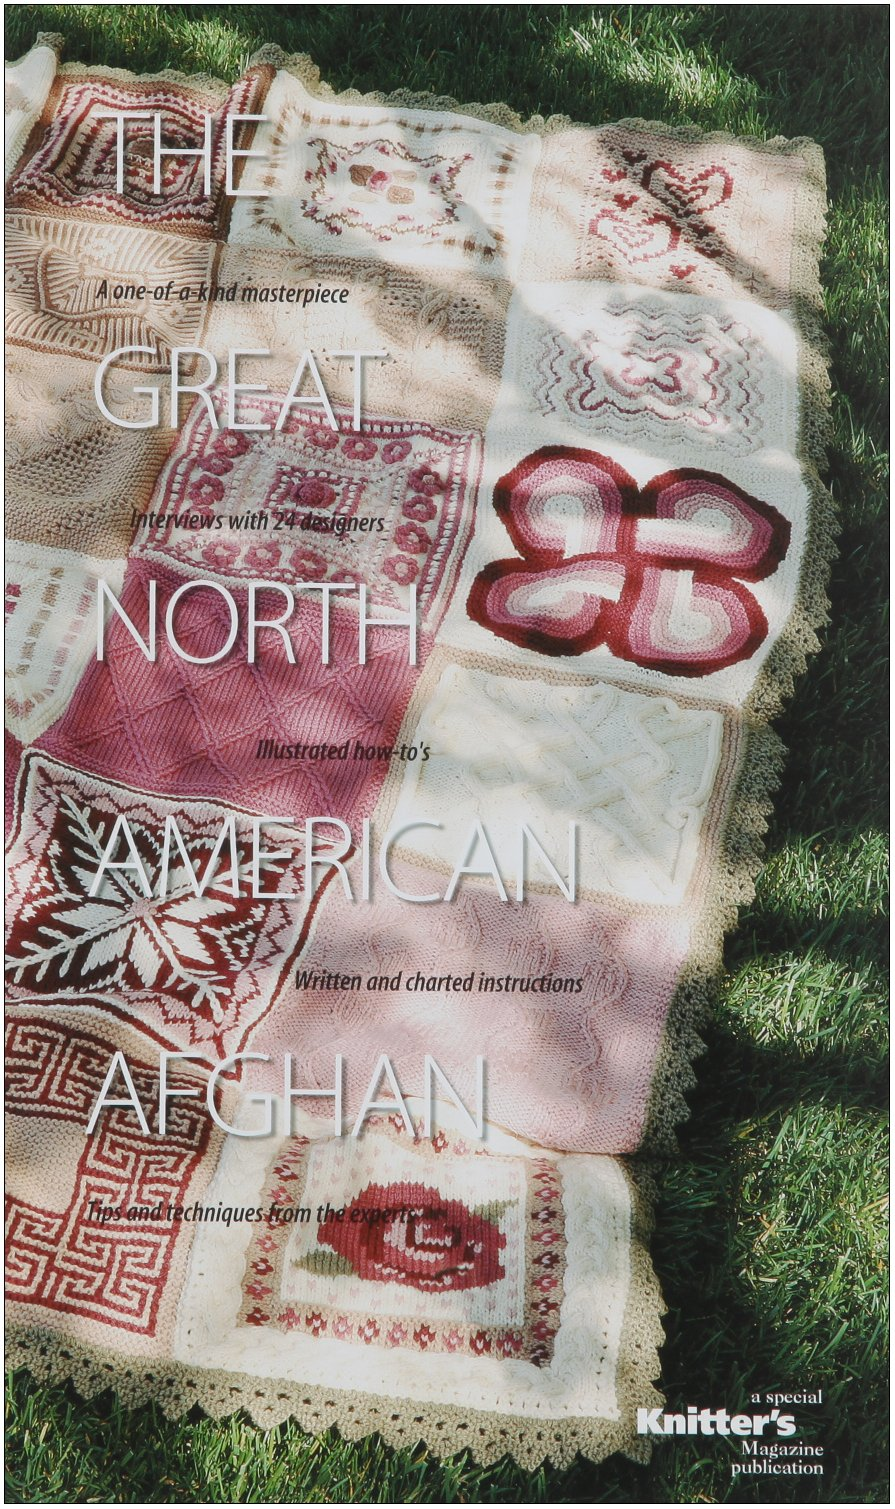 Download The Great North American Afghan: Interview with 24 Designers PDF